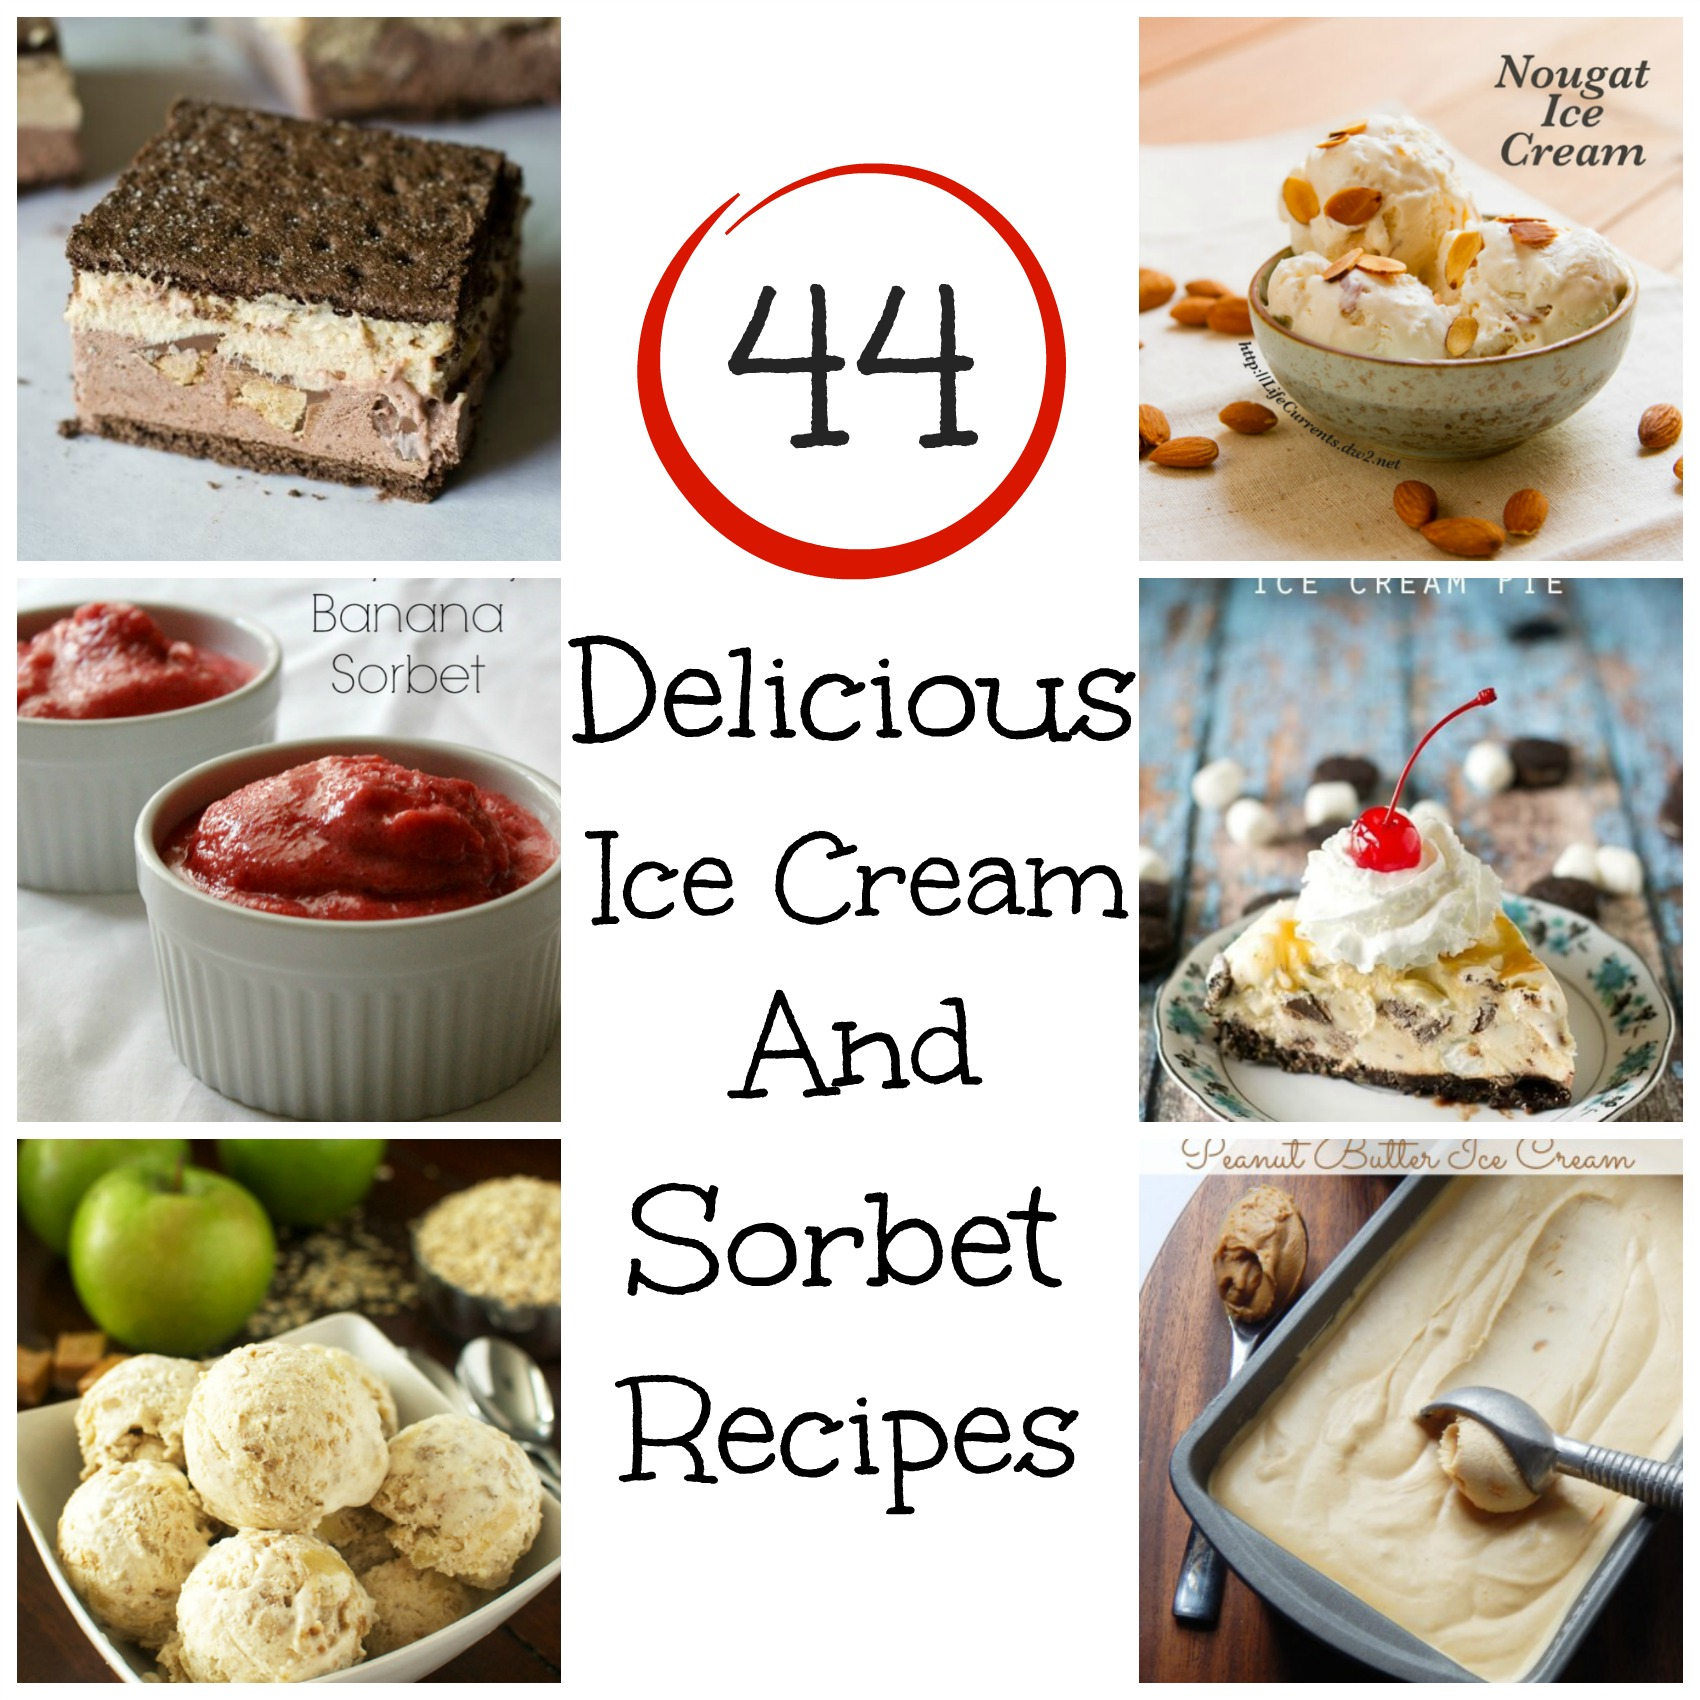 44 delicious ice cream sorbet recipes bunny 39 s warm oven for How to make delicious ice cream at home